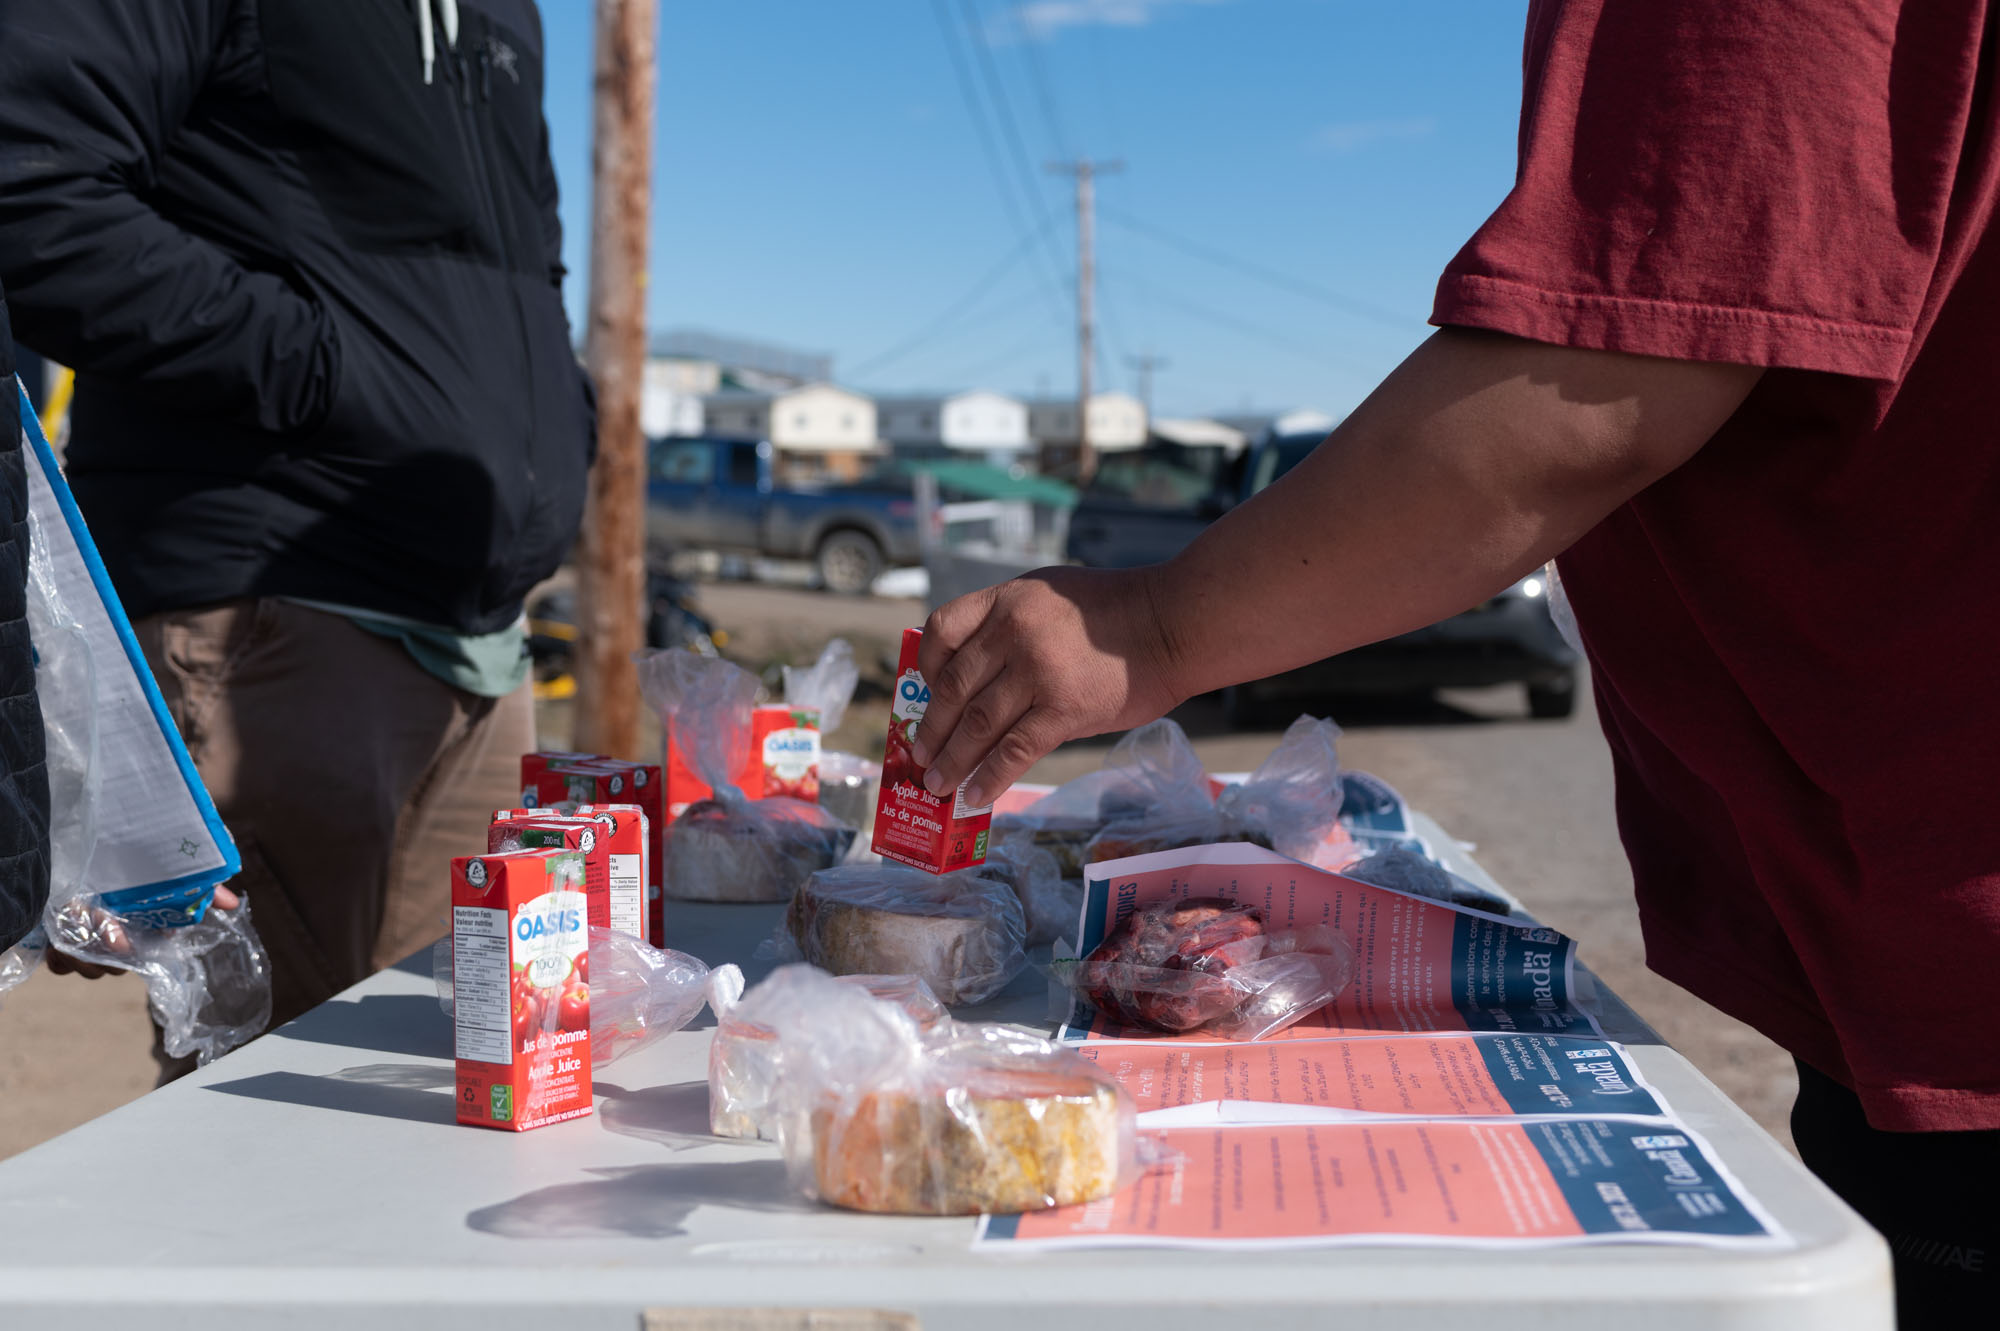 To celebrate National Indigenous Peoples Day on Monday, the City of Iqaluit's recreation department spent the afternoon distributing country food, including Arctic char and other meats, as well as juice boxes across the city. The popular pop-ups often lasted between 10 and 15 minutes before the country food was snapped up. (Photo by Dustin Patar)